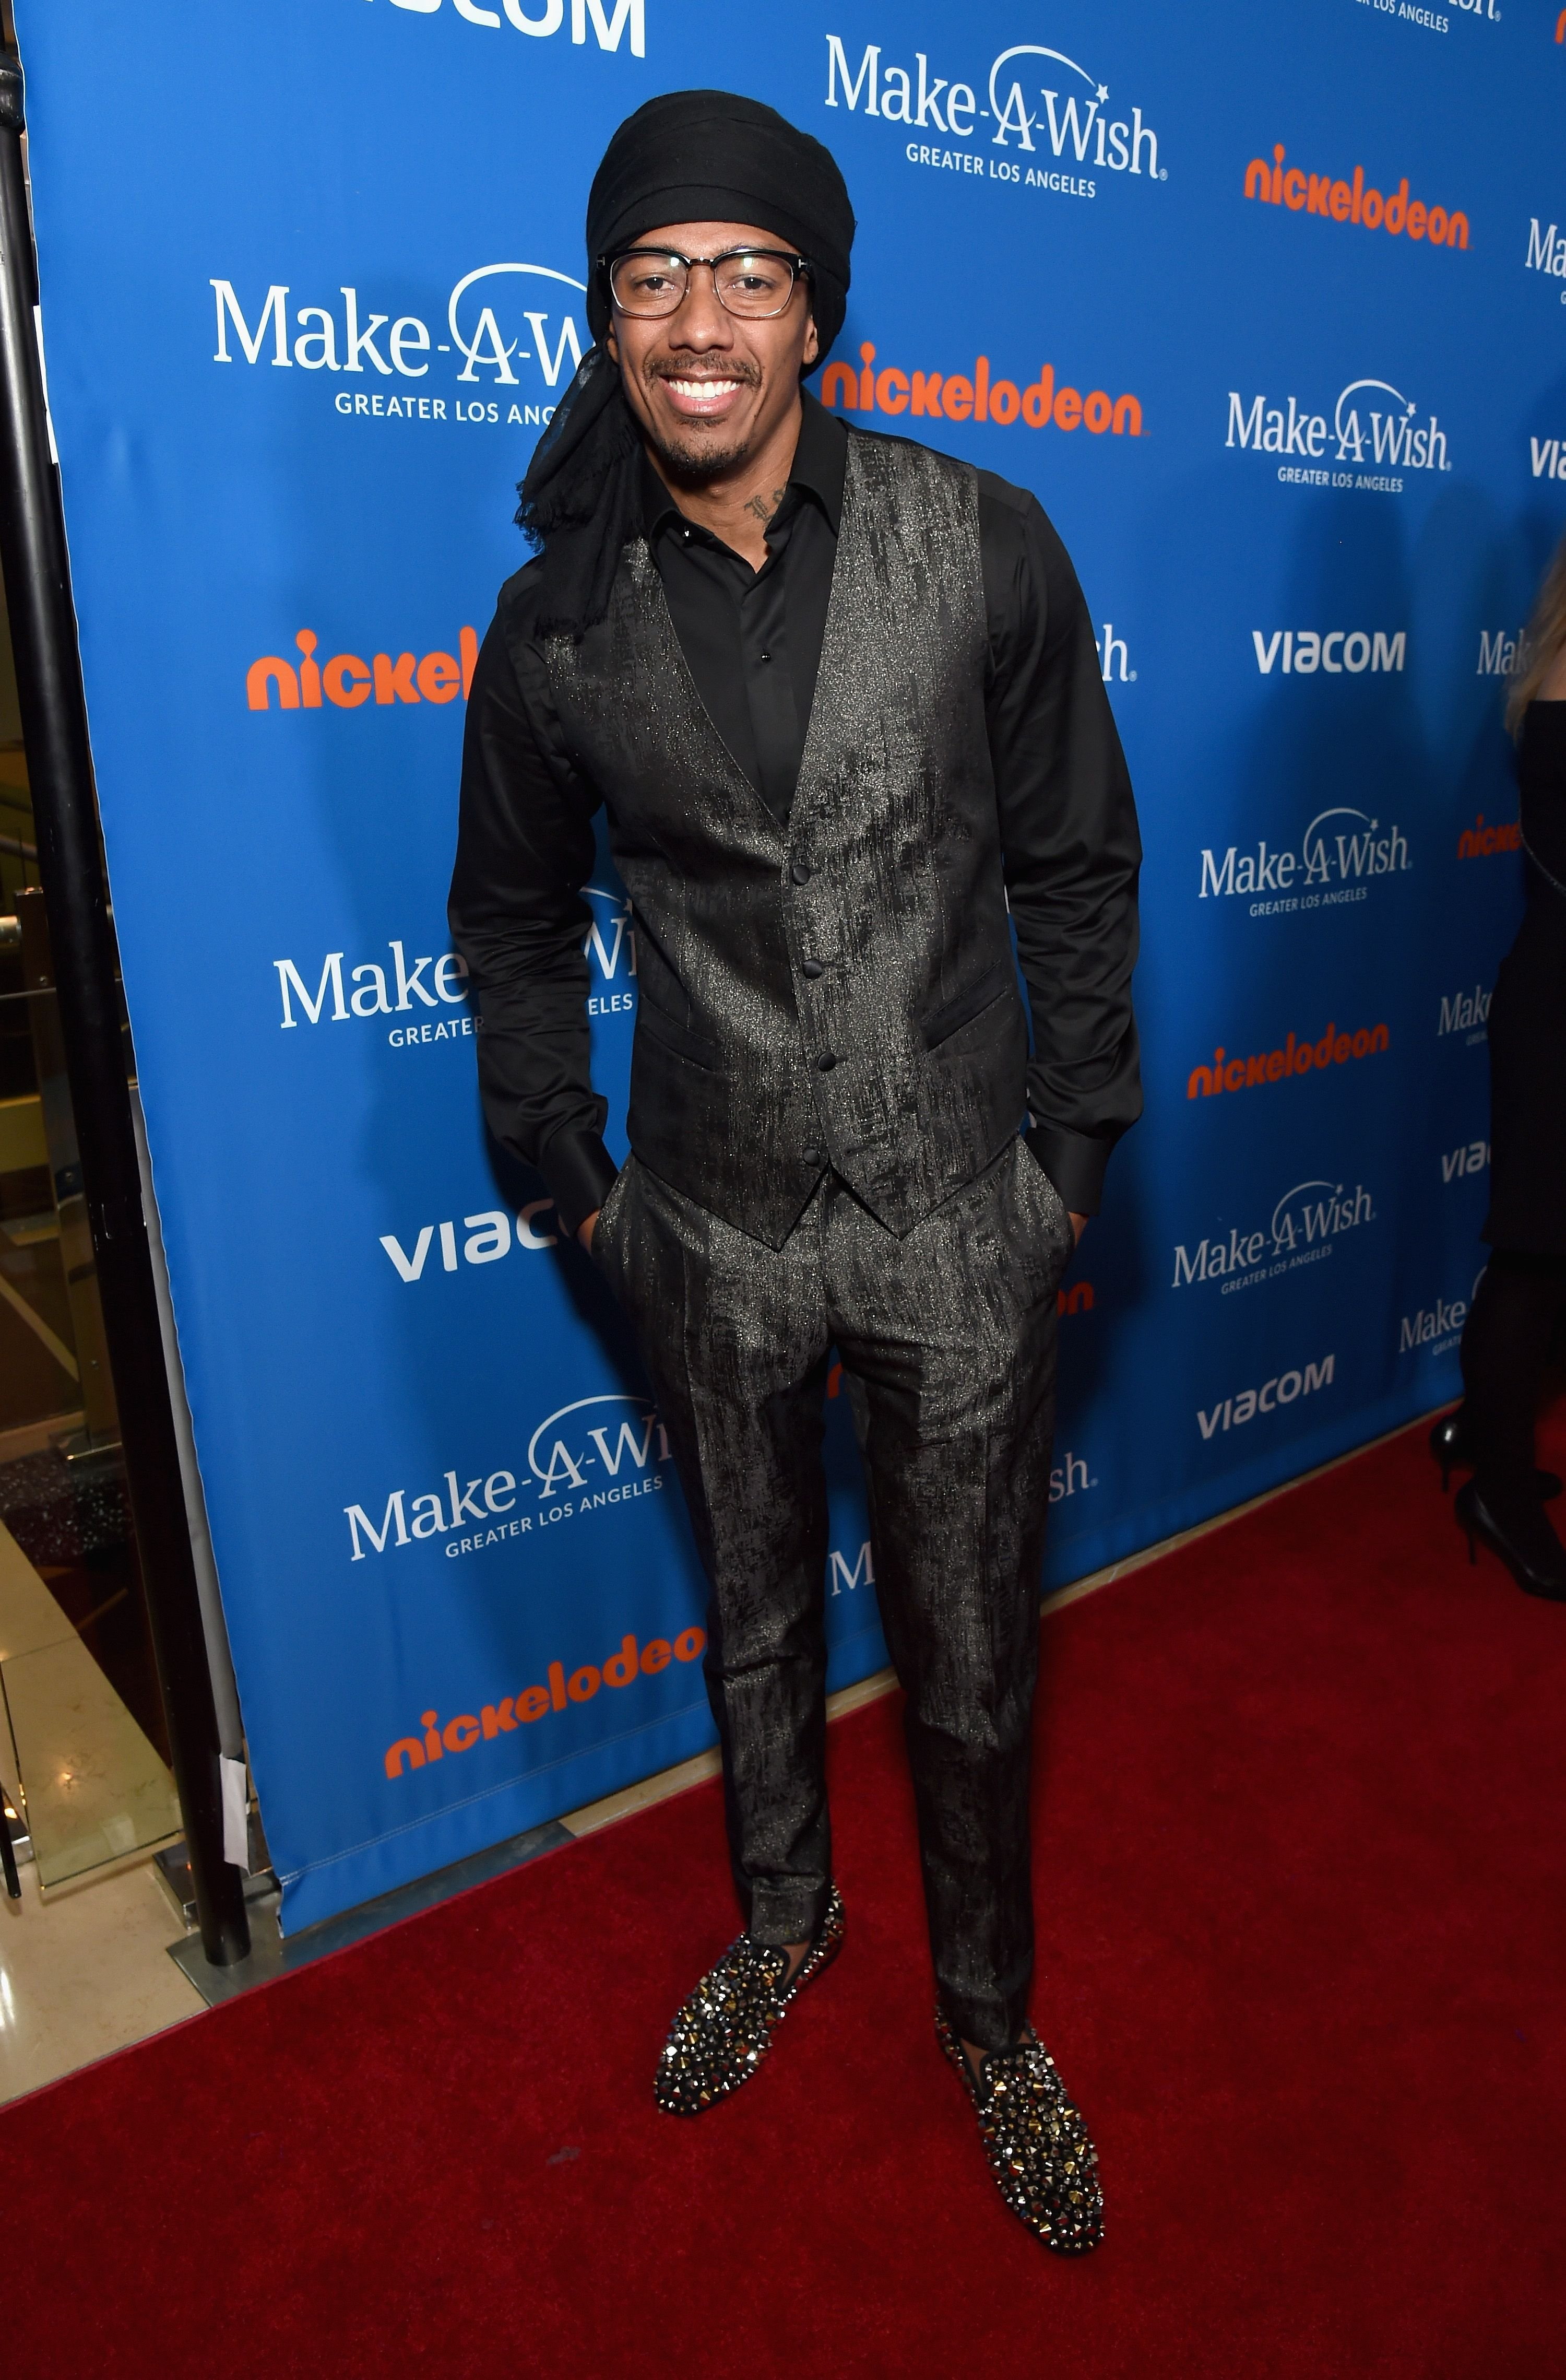 Nick Cannon arrives at the 2018 Make A Wish Gala at The Beverly Hilton Hotel on October 24, 2018 in Beverly Hills, California. | Source: Getty Images